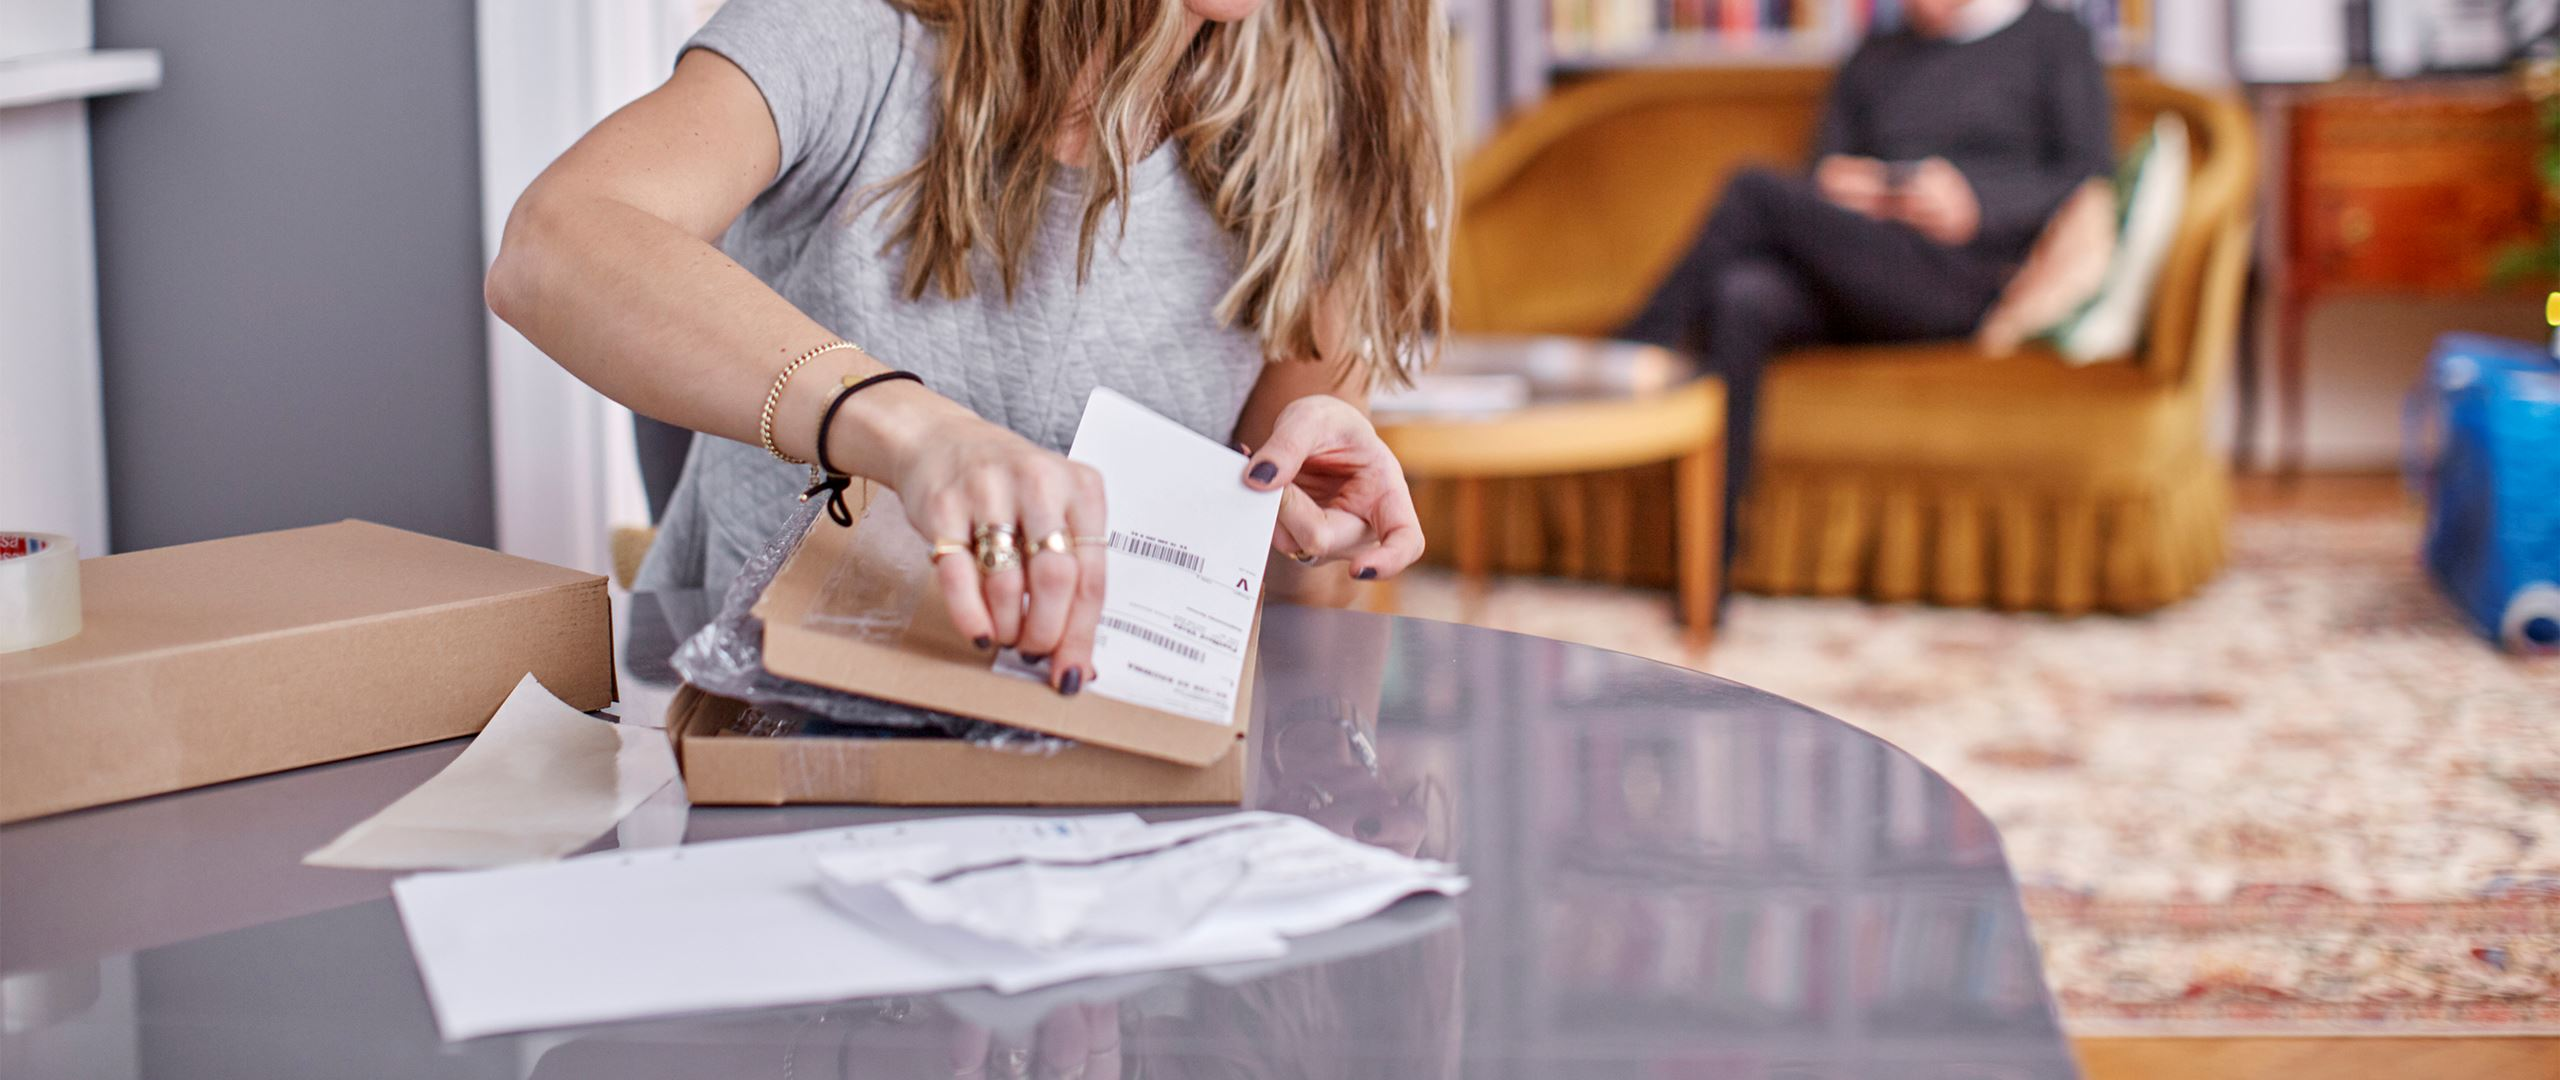 A girl attaching a shipping lable on a parcel.